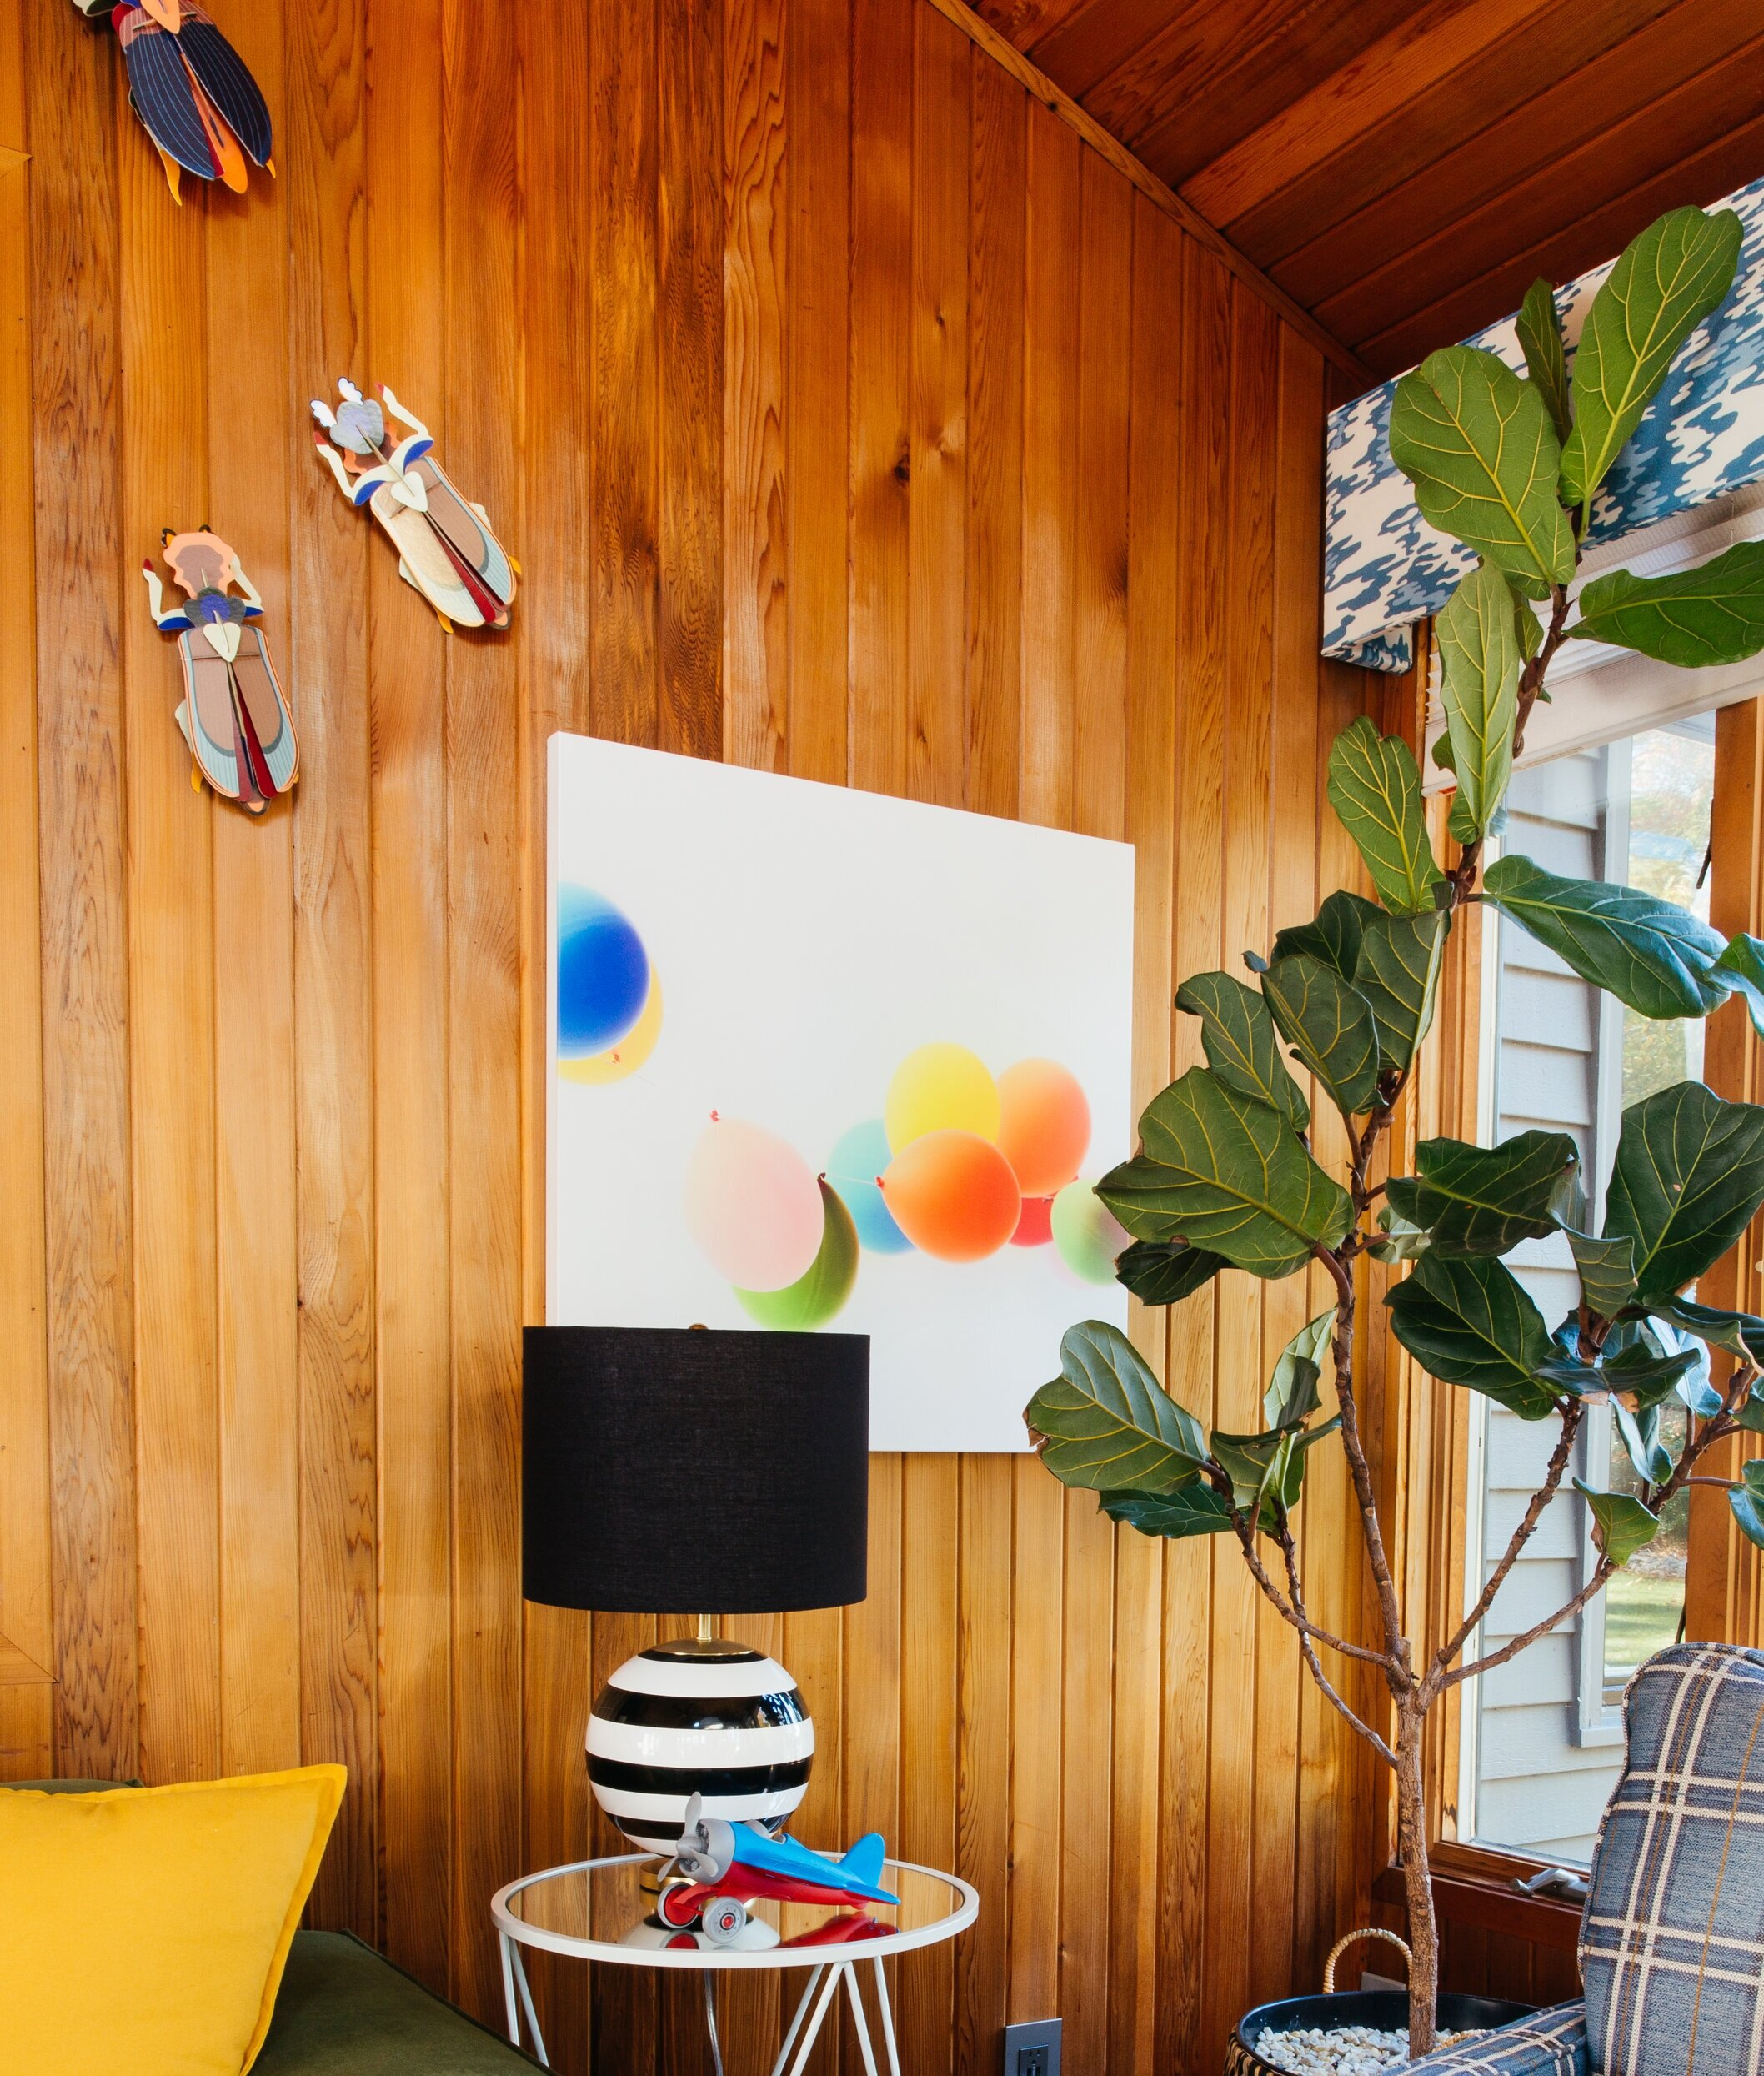 ORC+sunroom+Minted+balloon+art+TheRathProject.jpg